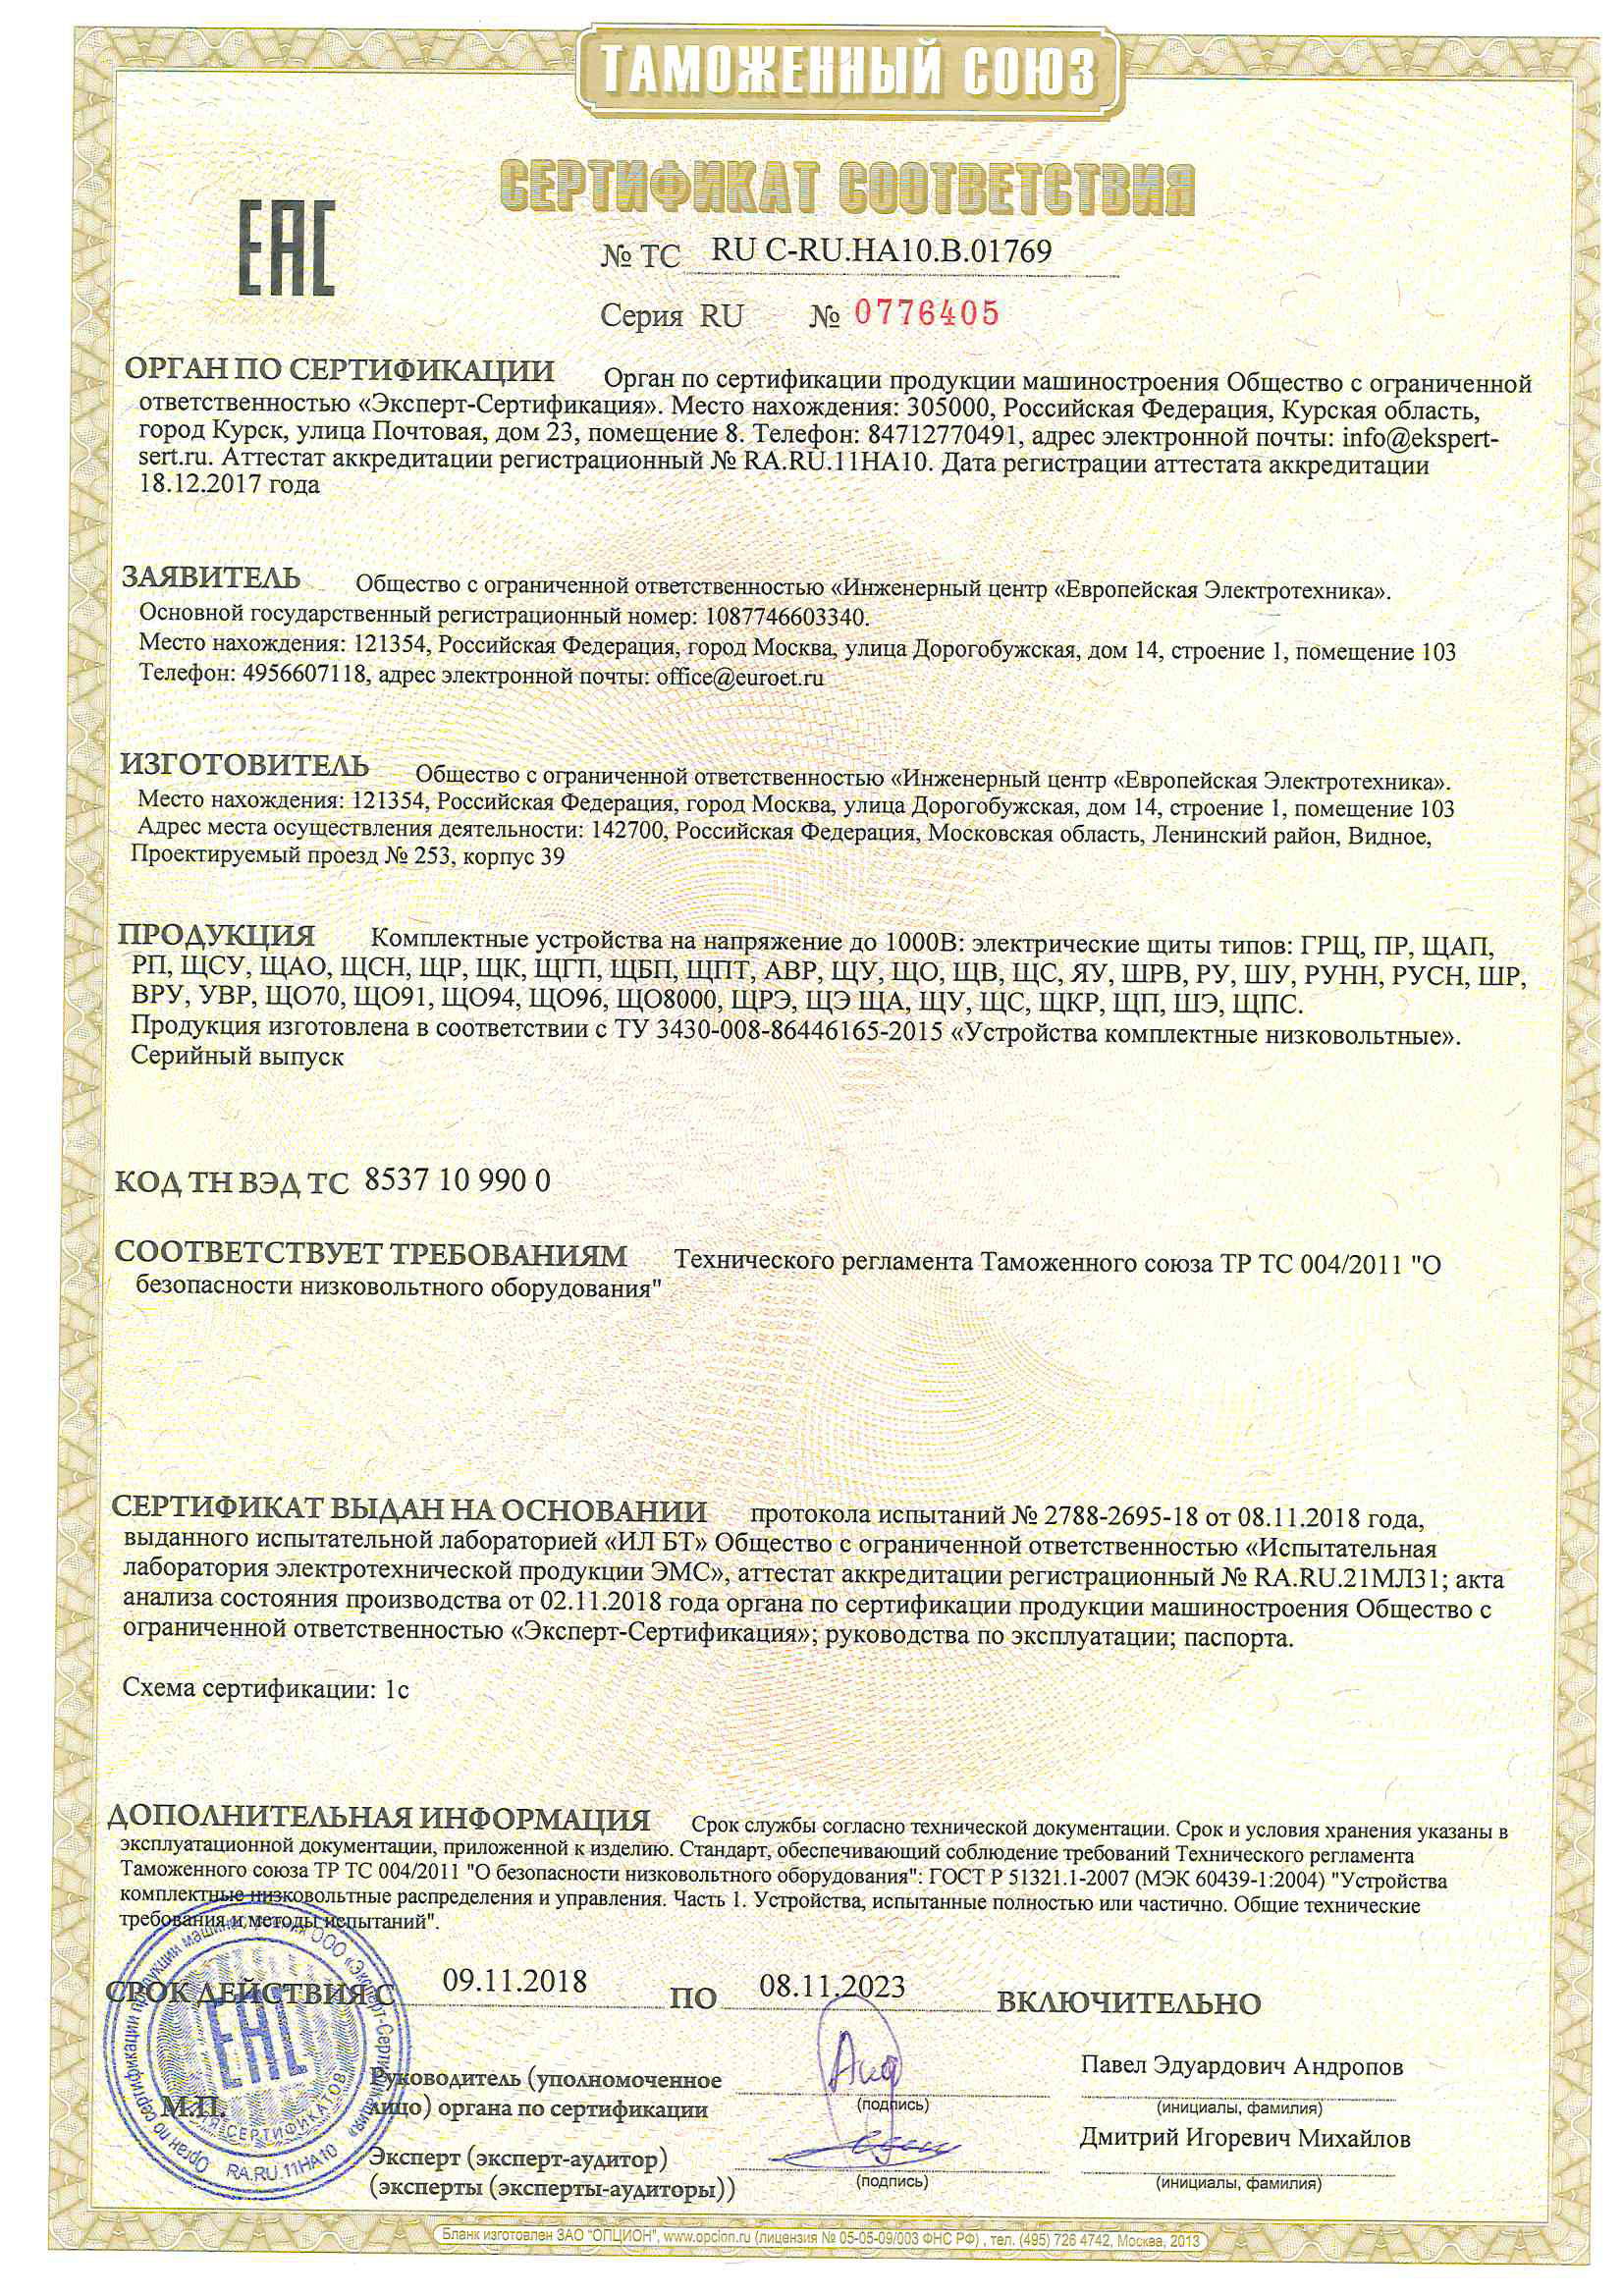 Certificate of Conformity to Technical Specifications for Automatic Standby Activation Equipment